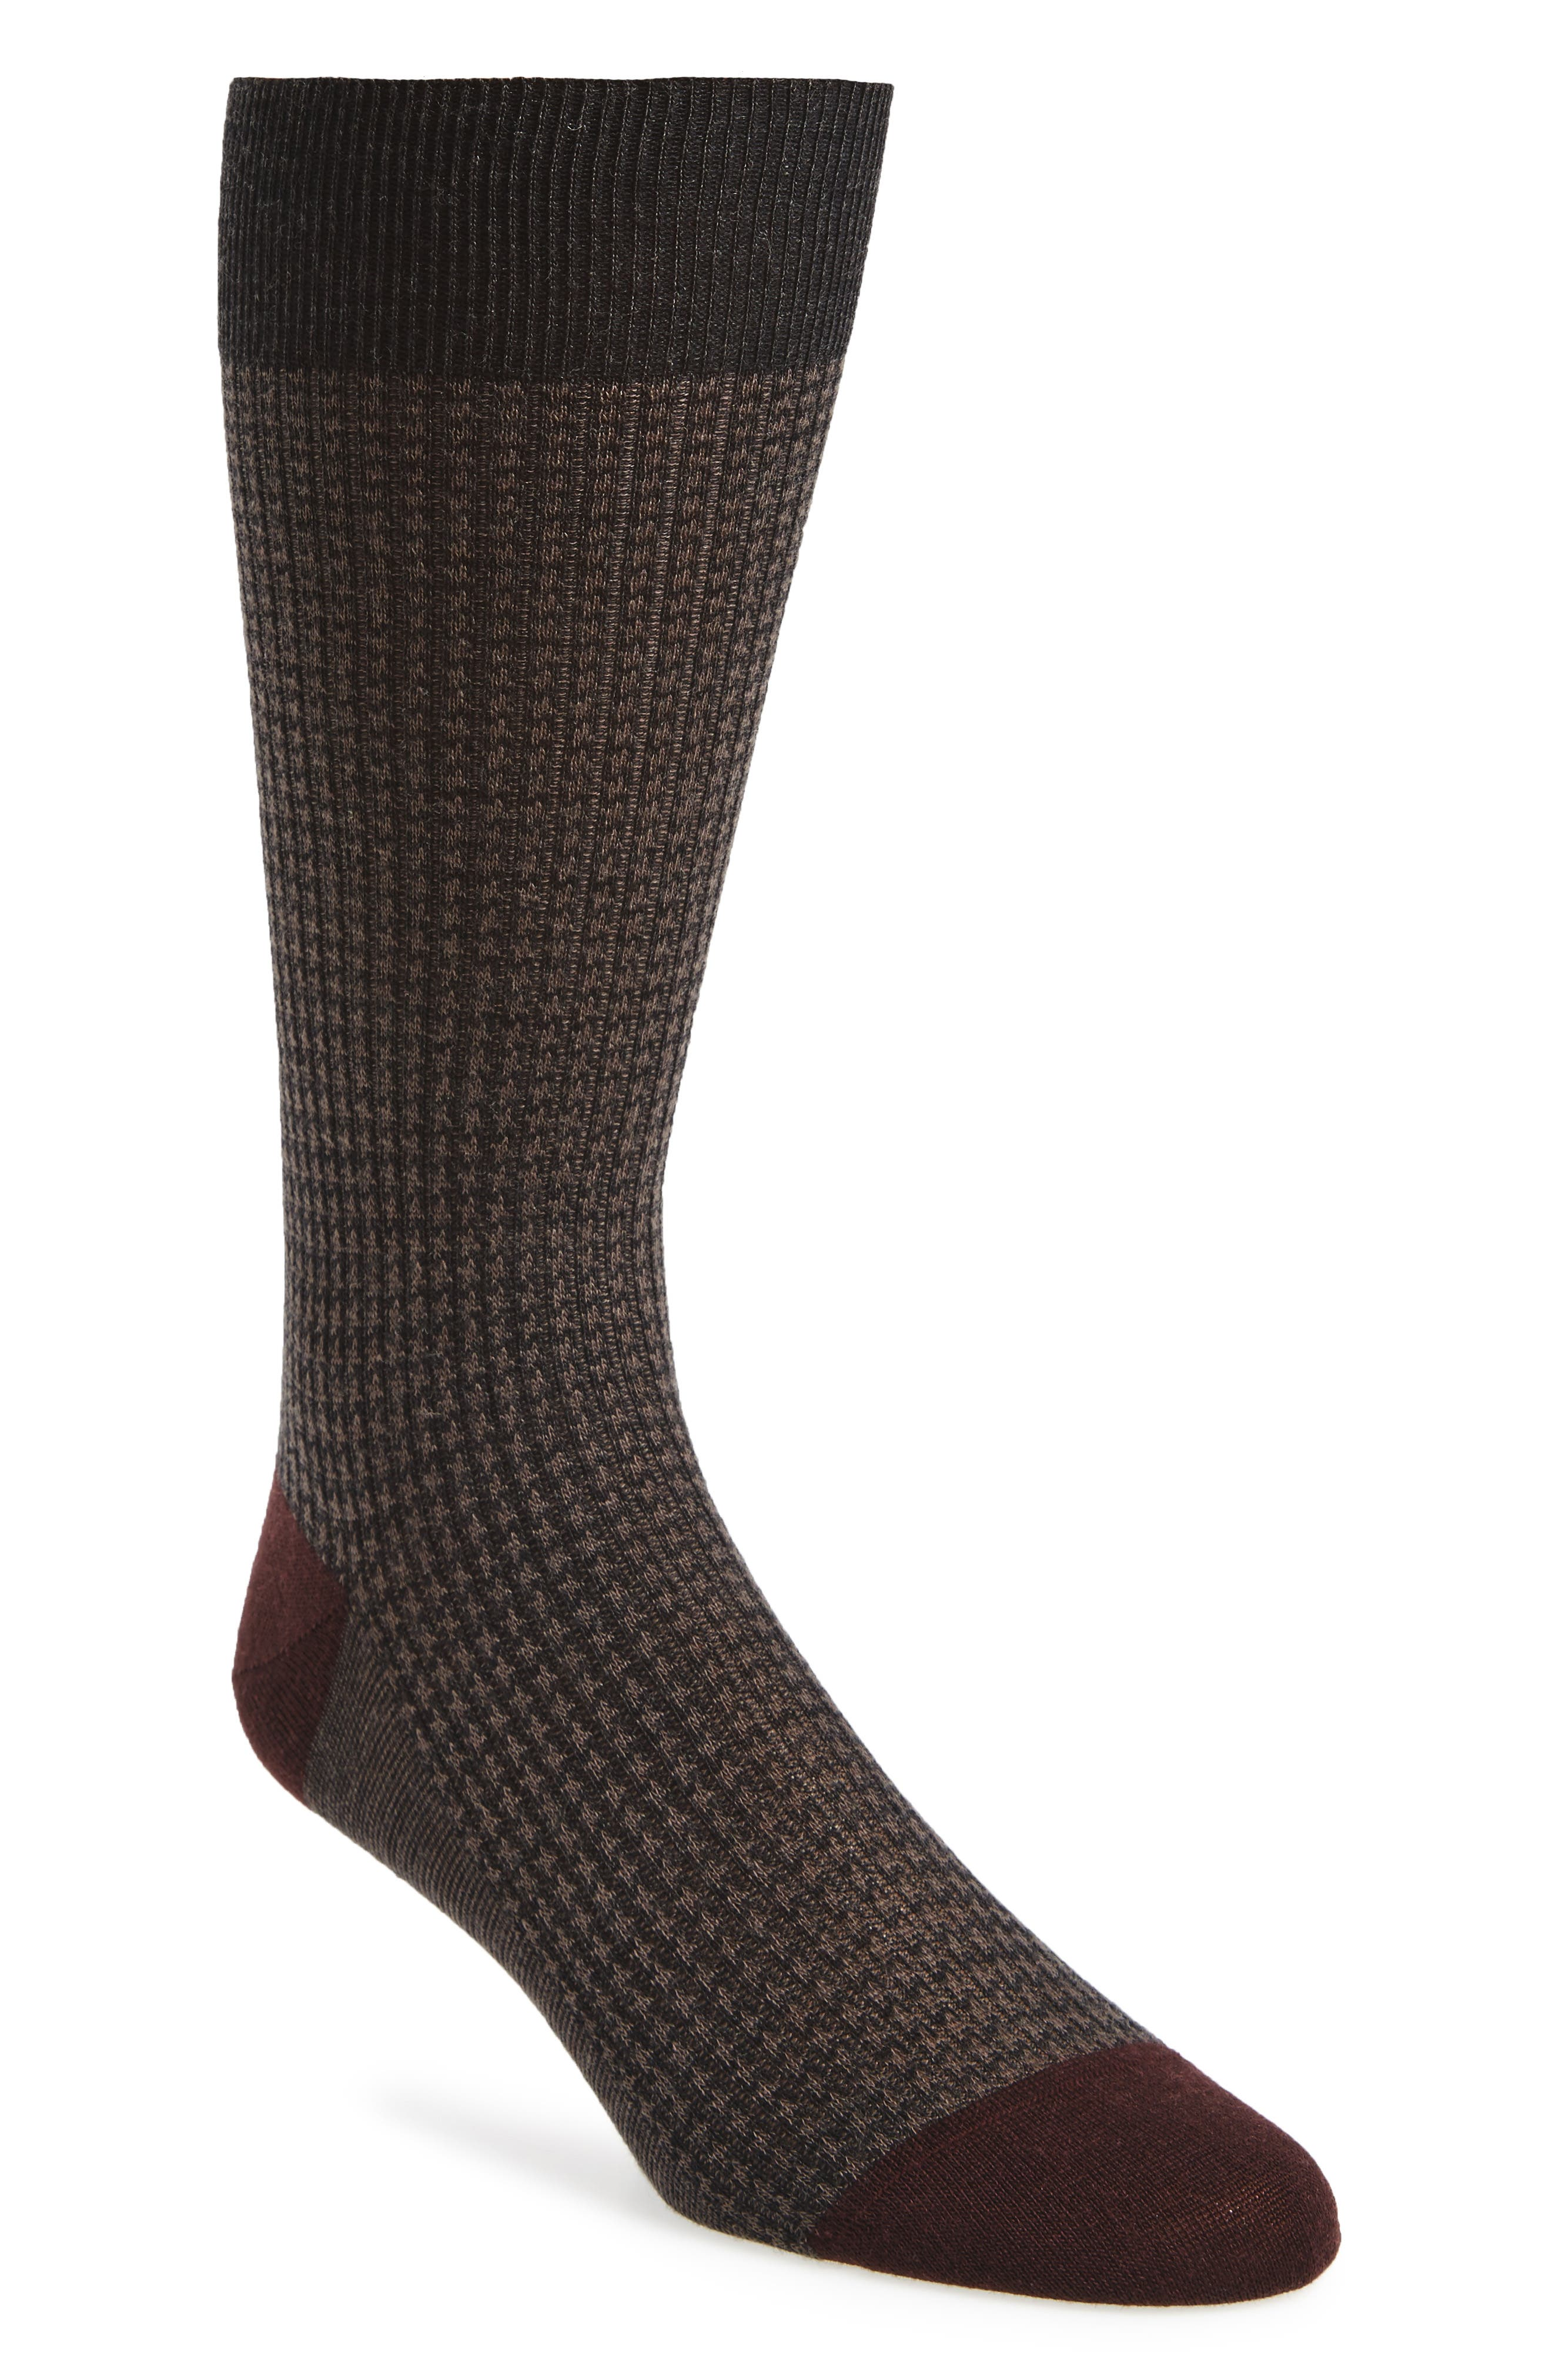 Pantherella Houndstooth Wool Blend Socks